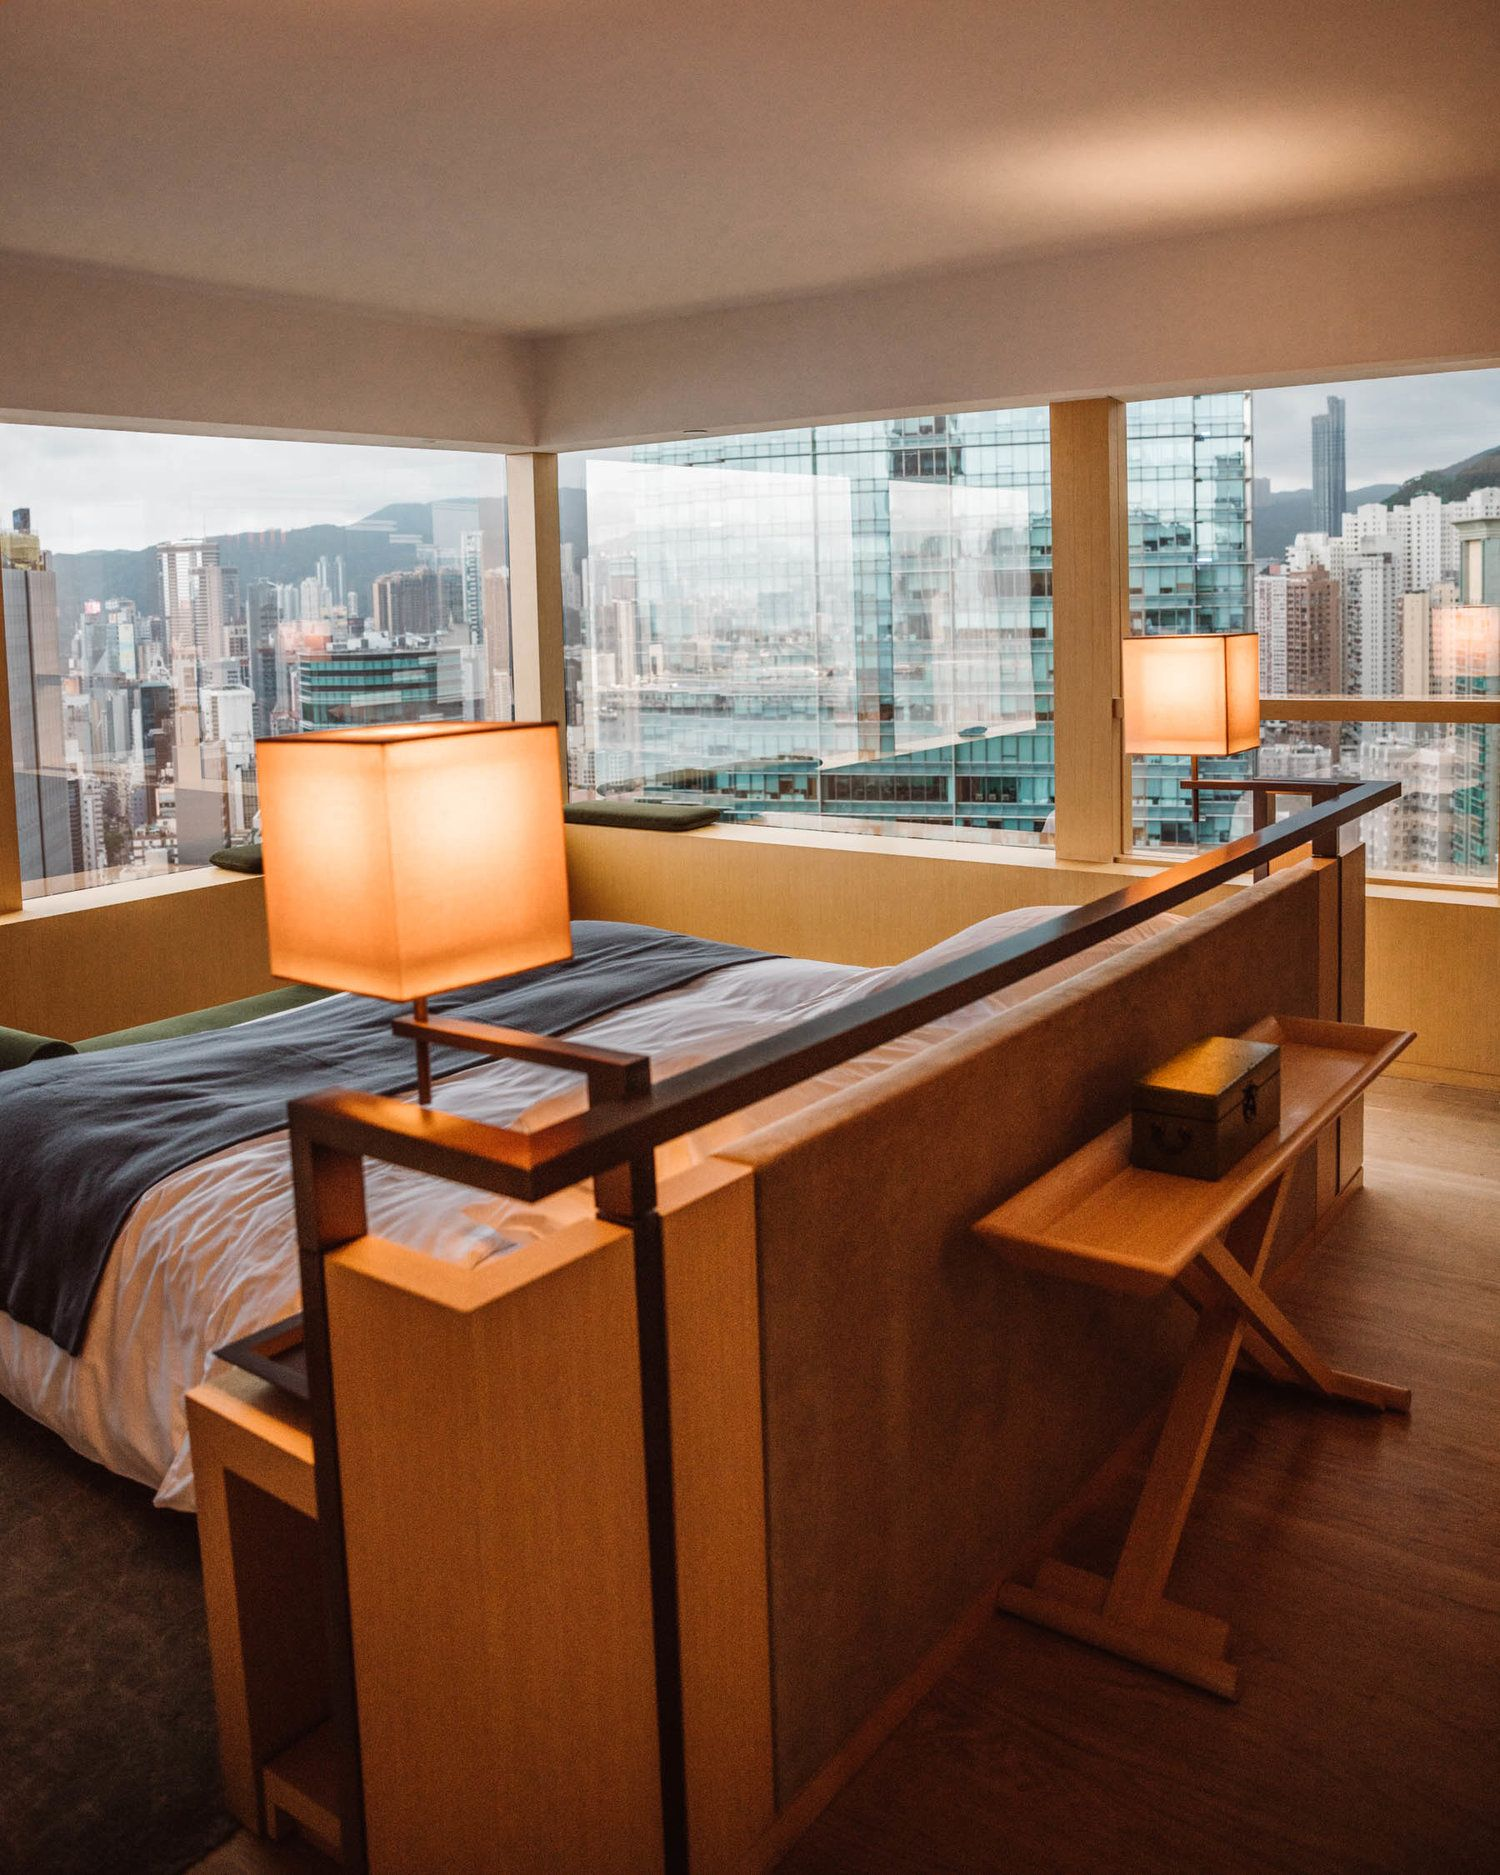 Home Design Ideas Hong Kong: Where To Stay In Hong Kong - The Upper House